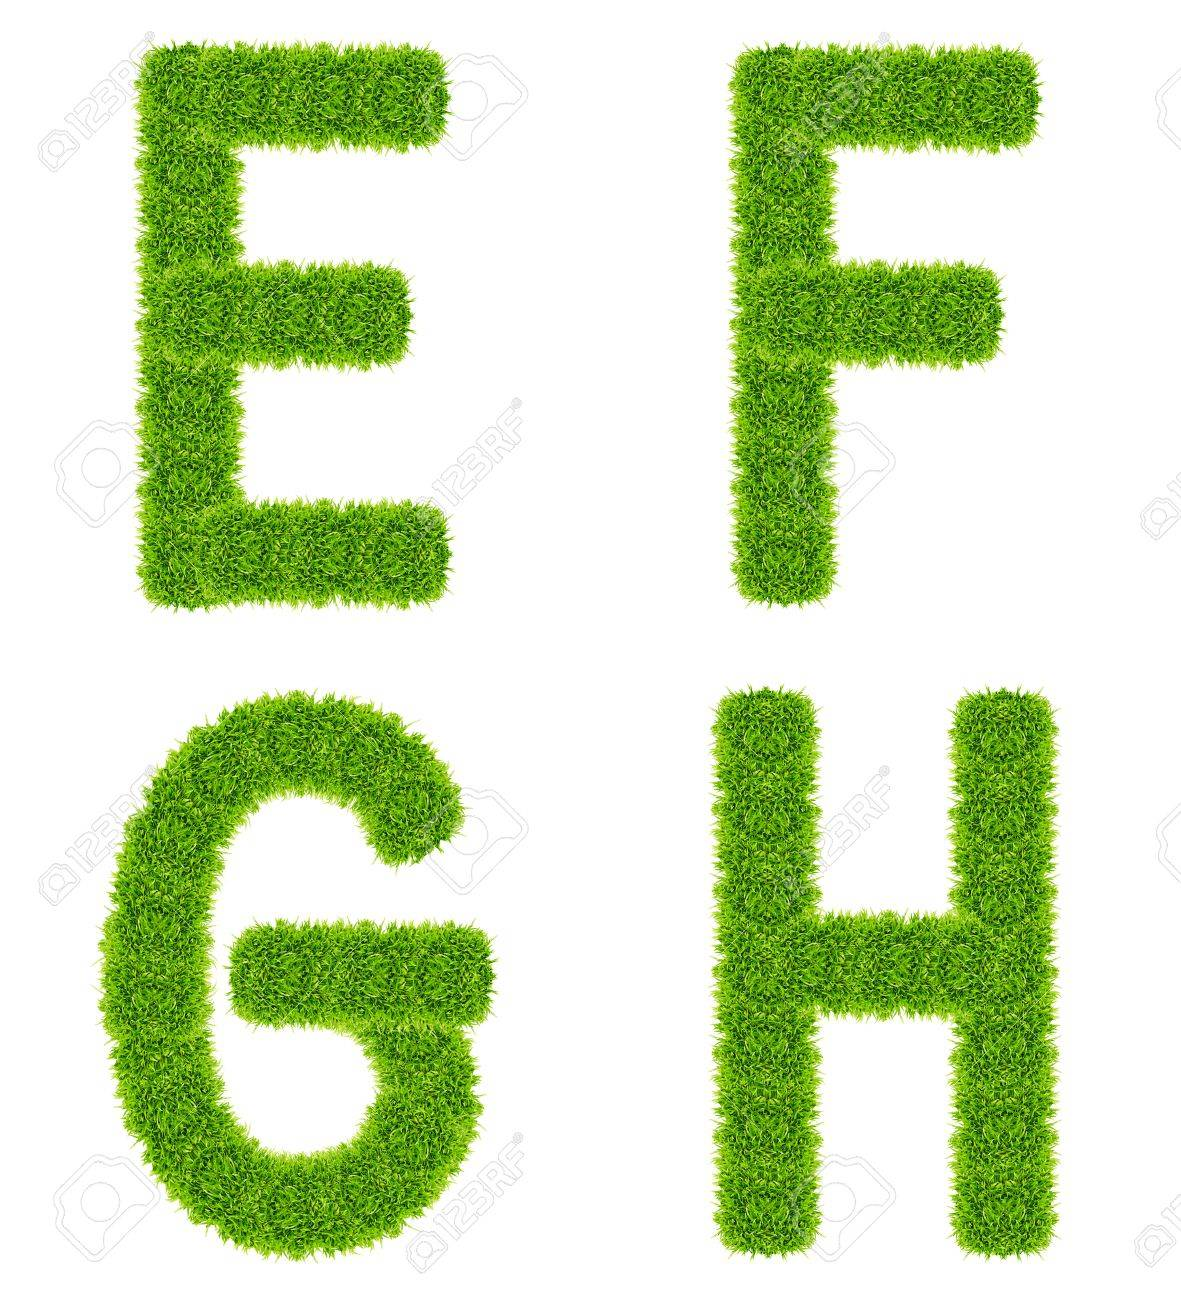 green grass letter efgh isolated Stock Photo - 9943533